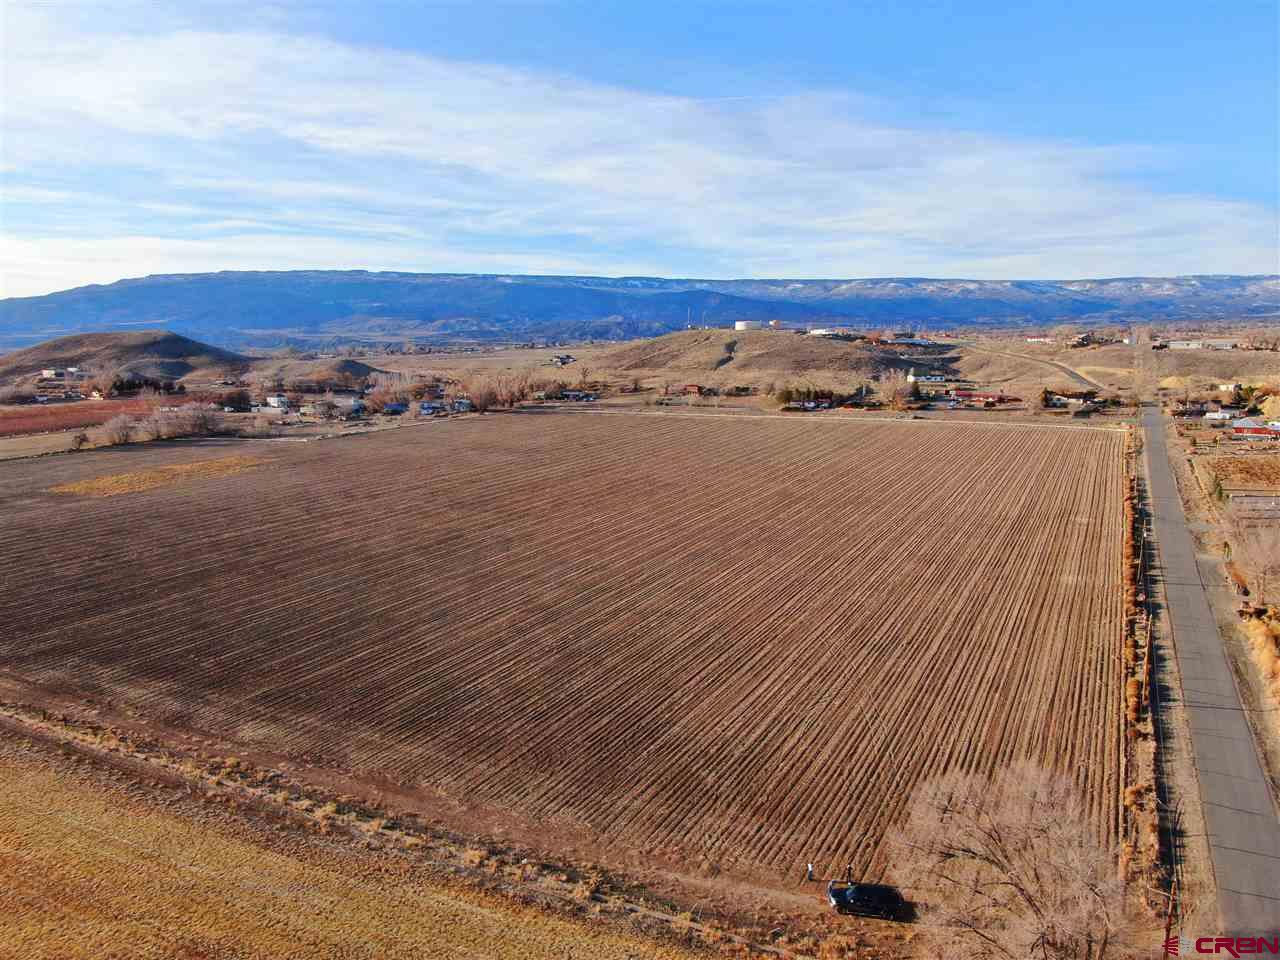 FARM LAND! This 36.5-acre property in Delta County is situated at 5,180 feet in elevation with good water rights, a slight south-facing aspect for excellent crop production, and every bit of the property is usable farmland. This parcel has been farmed for over a century, growing corn, pinto beans, alfalfa, onions, and other high-value crops. It is served by Orchard City Irrigation District water shares and gated pipe. There is a gentle slope from north to south, so the property drains well and farms well. Views are excellent in practically all directions. The property is surrounded by other farm acreages and small-acreage mini-farms and would make an excellent development property for mini-farms and homesites. Utilities are in place. A 3-phase power line bounds the property on the east. Domestic water lines are in place, with a domestic water company tank located on a bluff just to the north of the property. An internet tower is located in close proximity, and natural gas is also available.